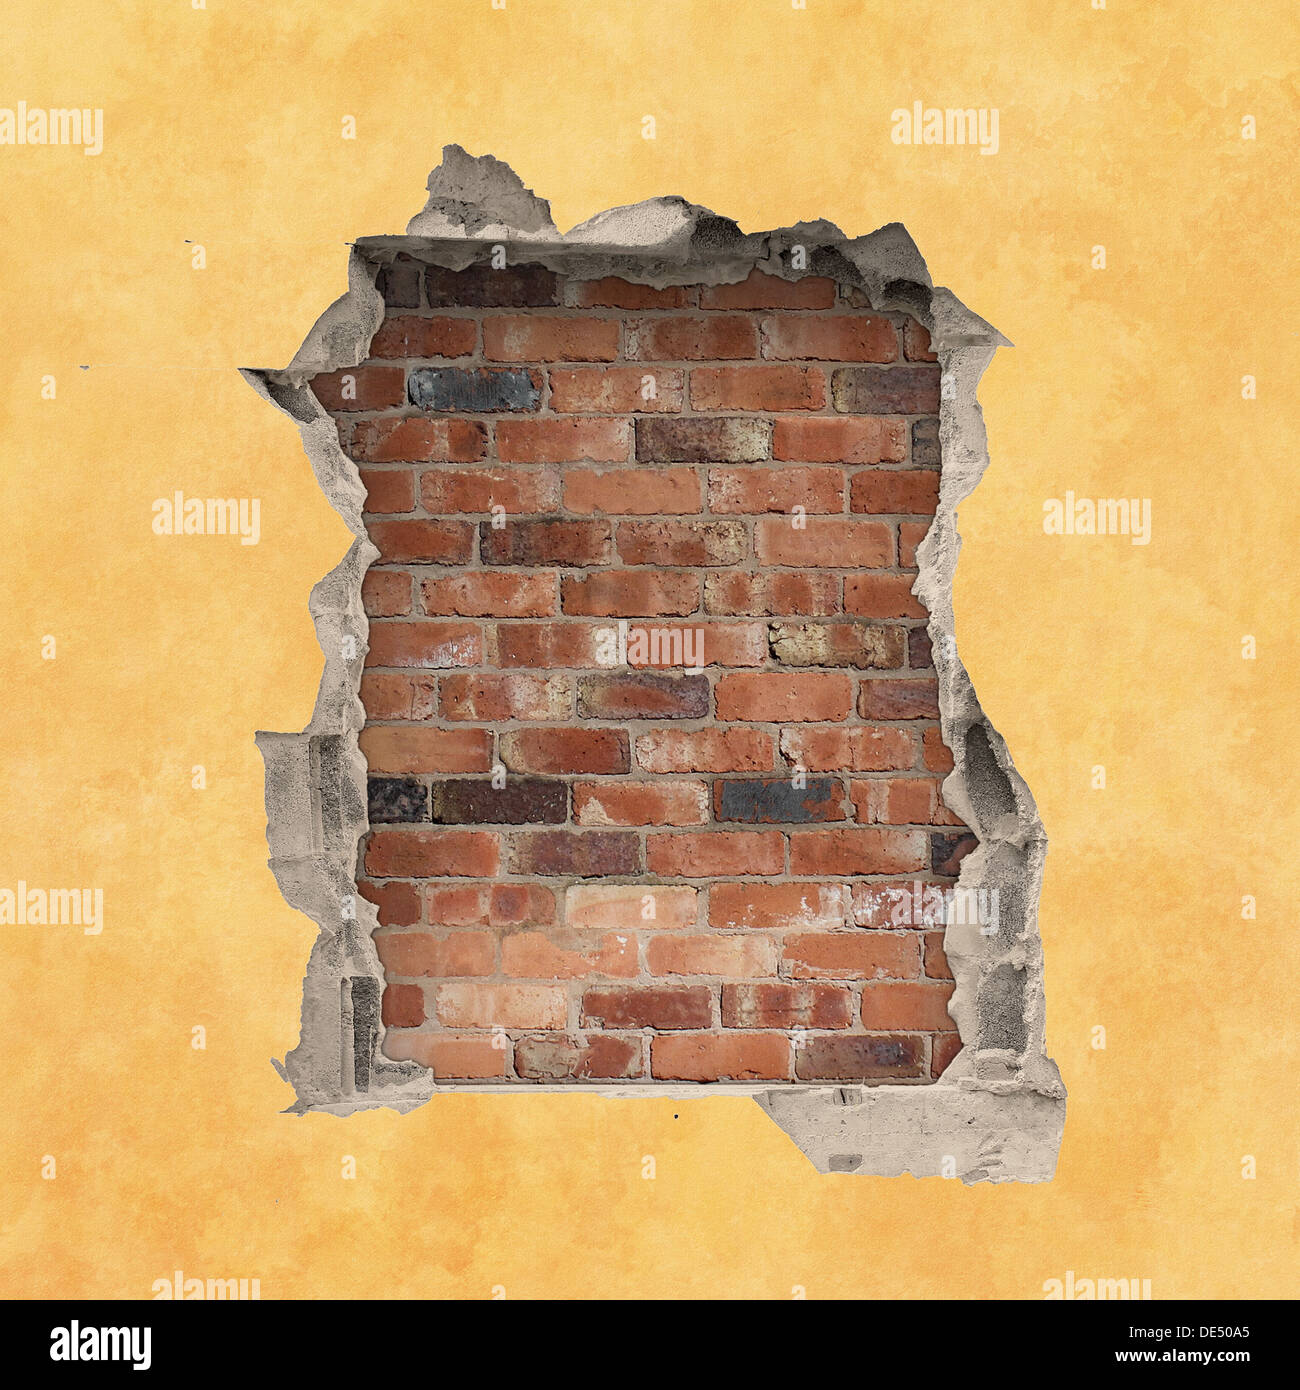 brick wall hole stockfotos brick wall hole bilder alamy. Black Bedroom Furniture Sets. Home Design Ideas